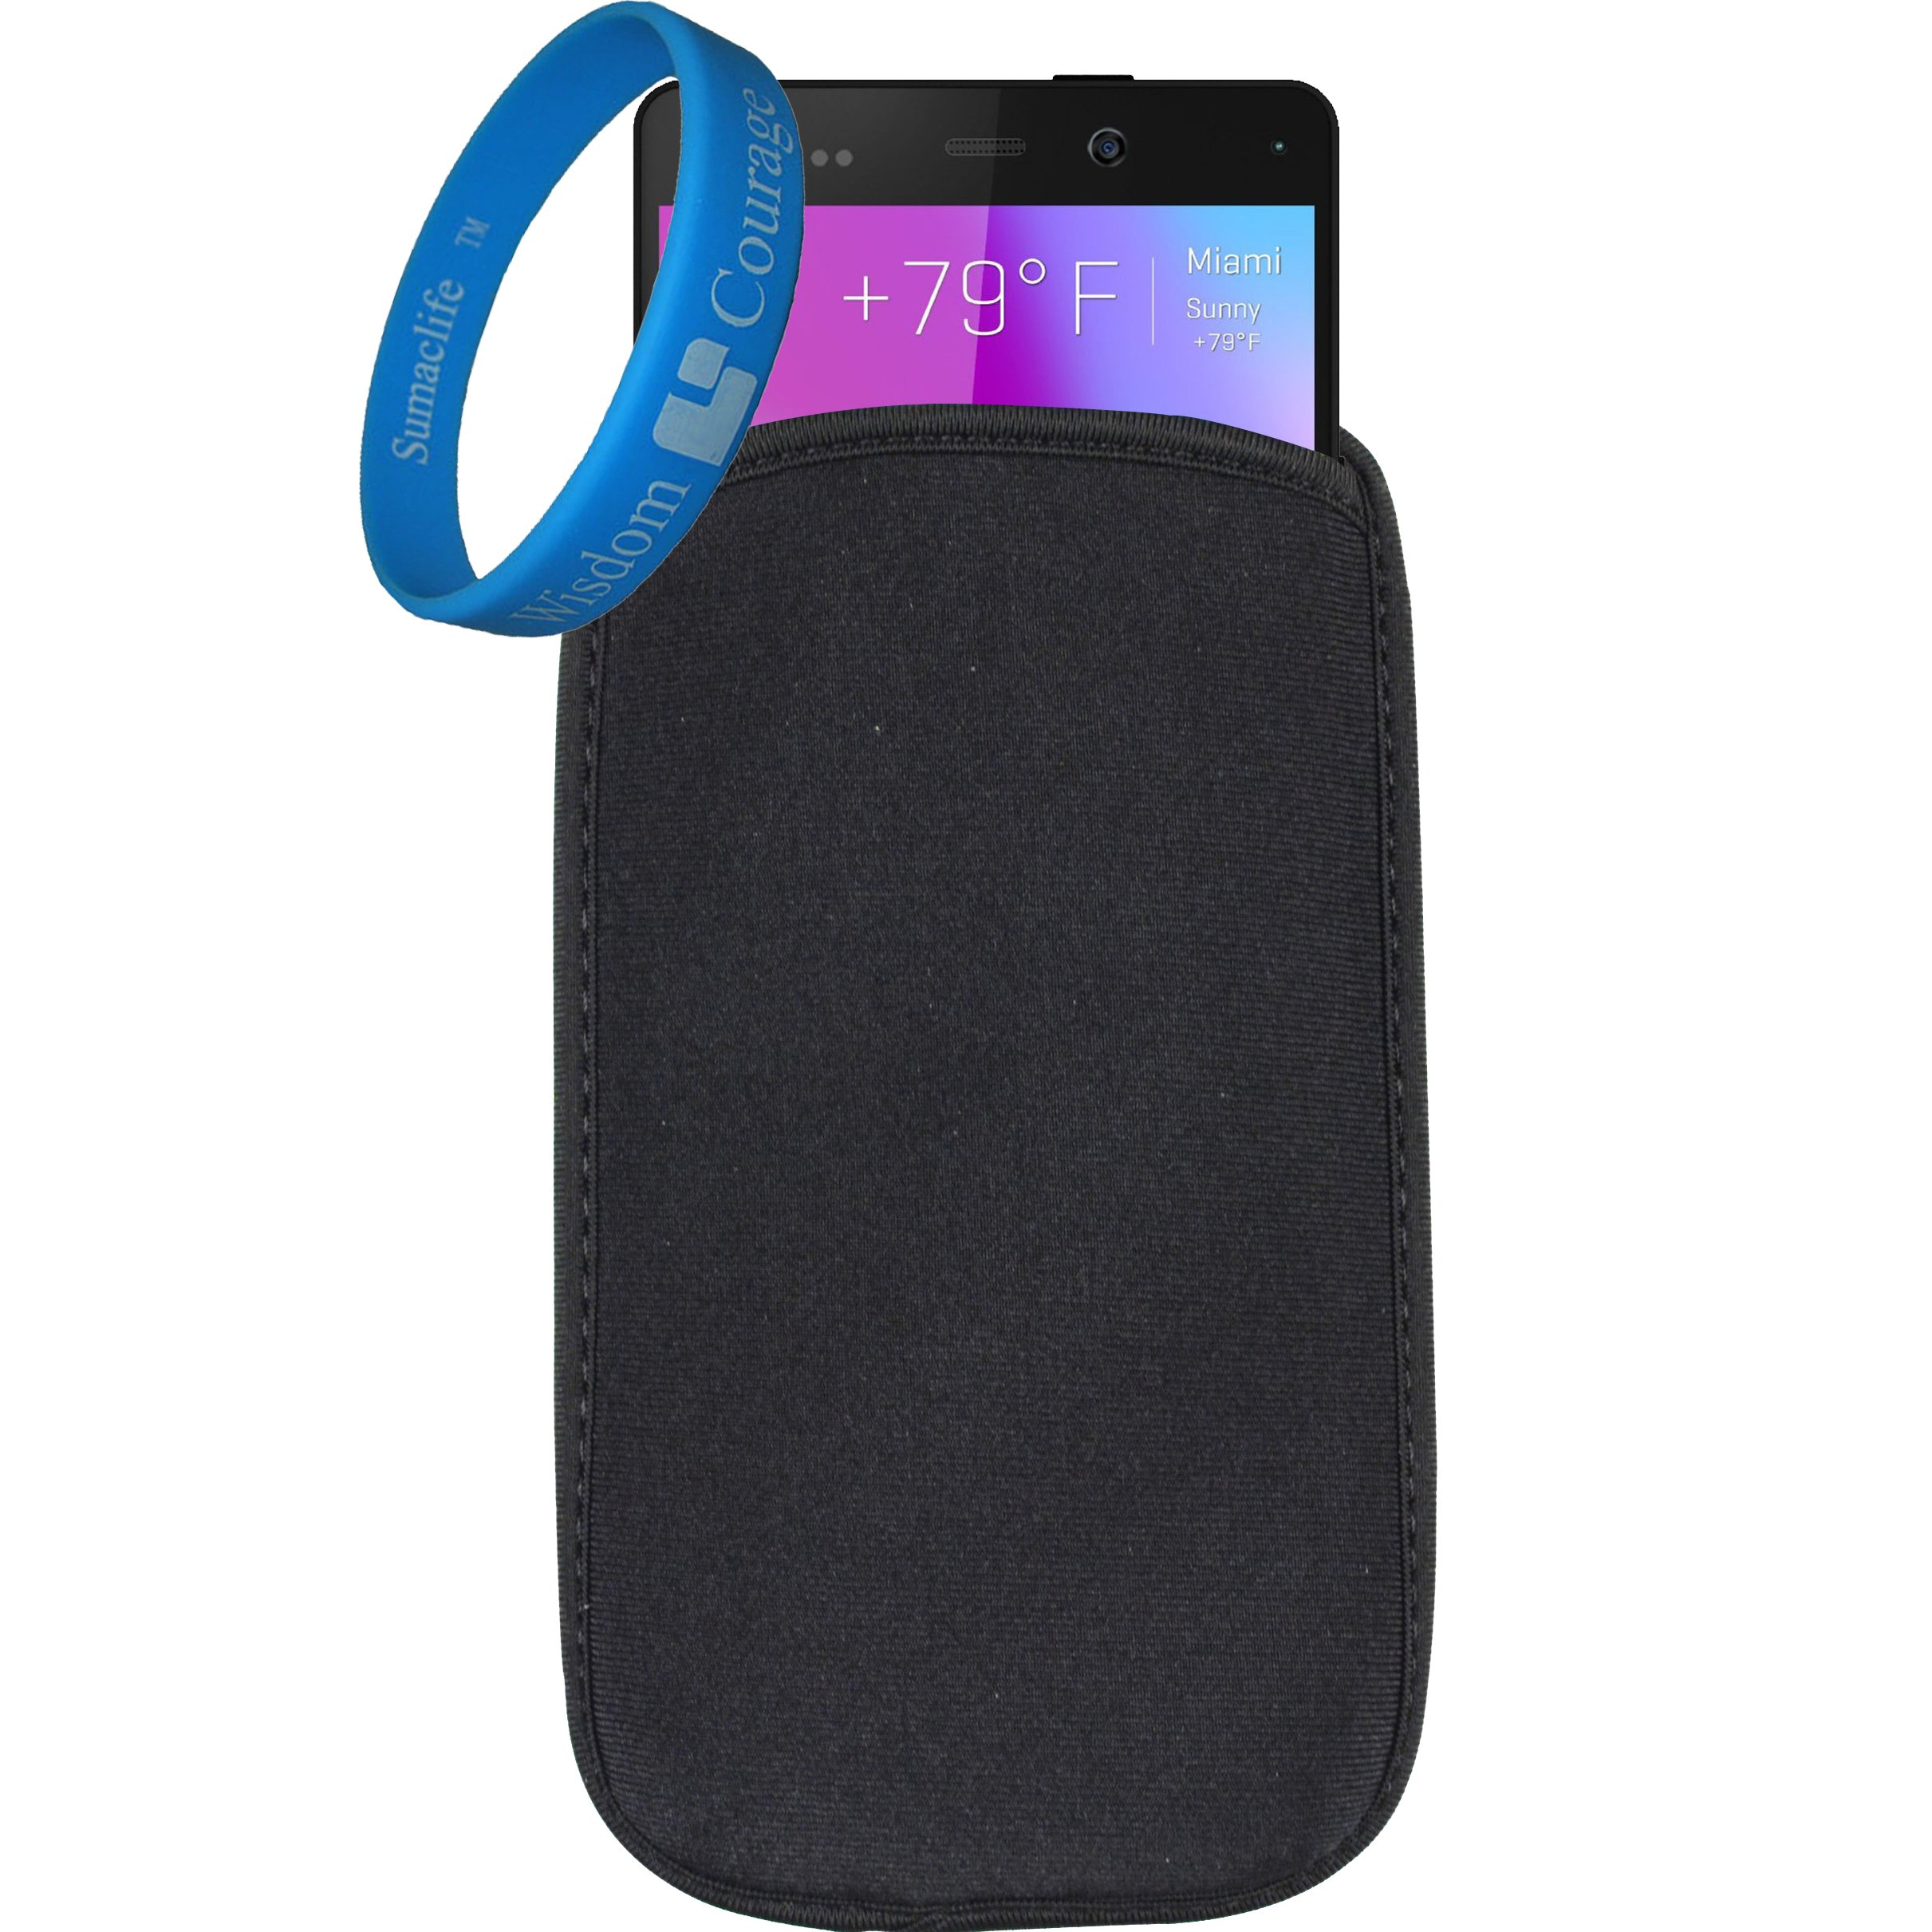 Universal Neoprene Protective Shock Absorbing Proof Pouch / Sleeve / Skin / Cover for BLU Life Play 2 / Studio C Mini / Life Pure Mini / NEO 4.5 Fit up to 5.1 inch Ios Android Windows smart Phone (Black) + SumacLife Wisdom Courage Wristband